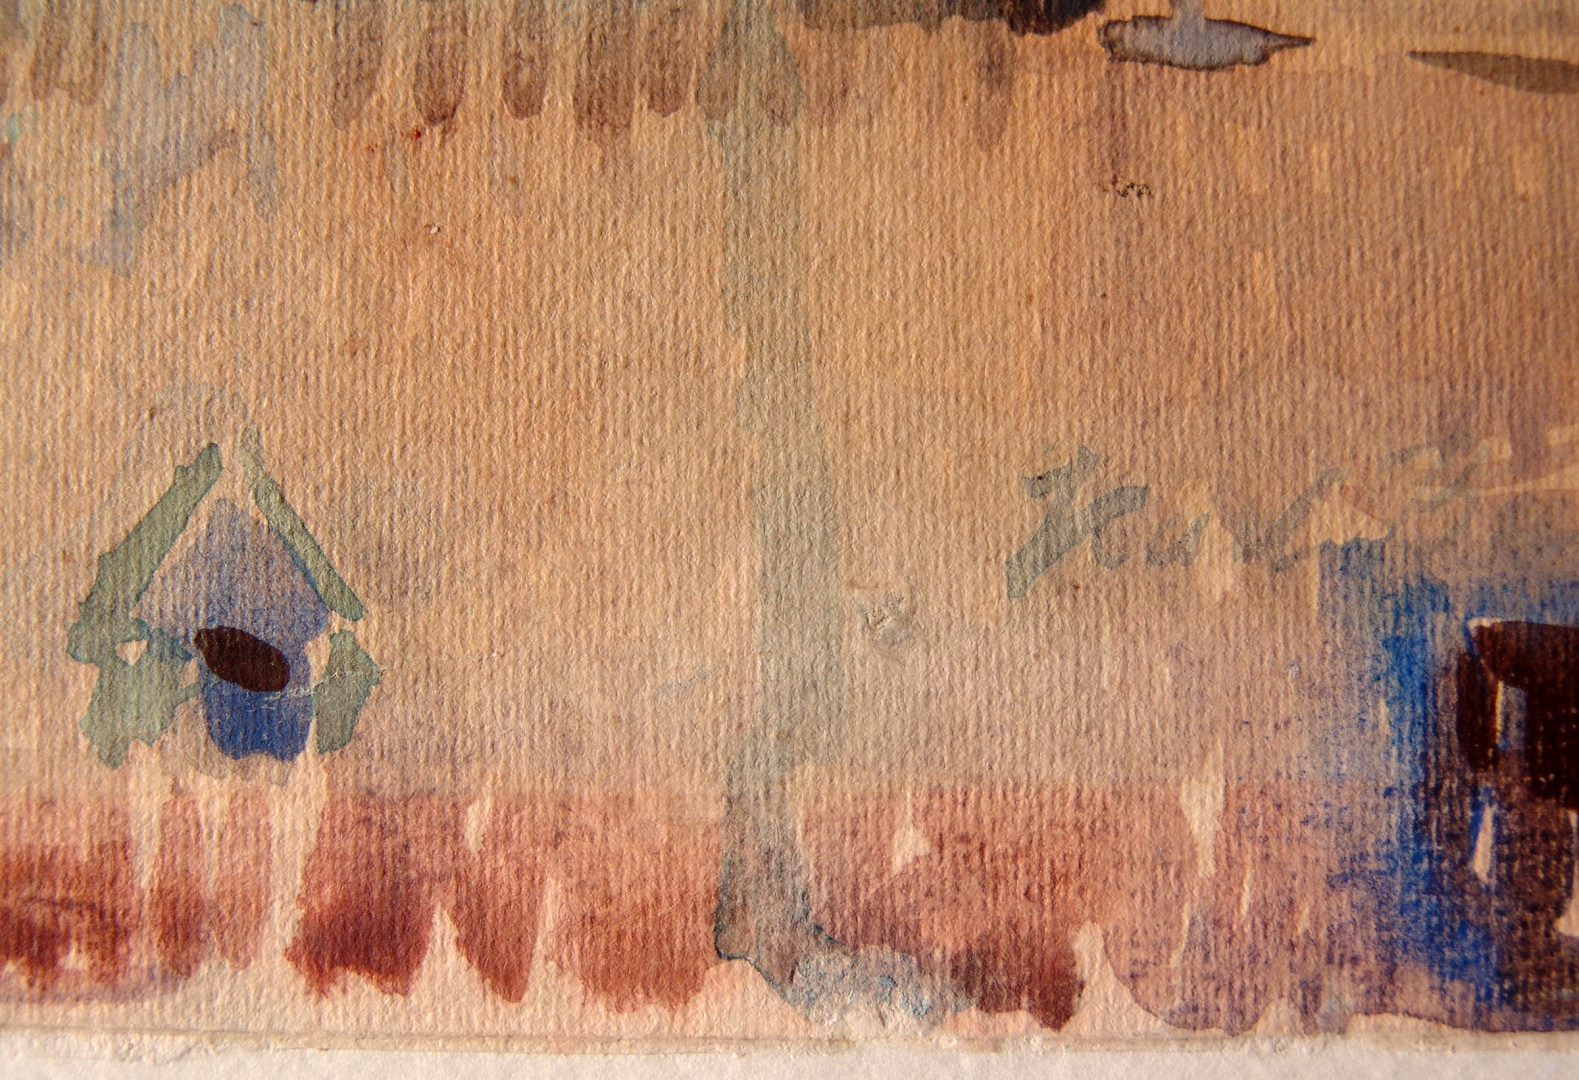 ill 2. Detail photo. Watercolour Tallinn by K. Burman. Photographing in visible light shows the line of fading clearly.